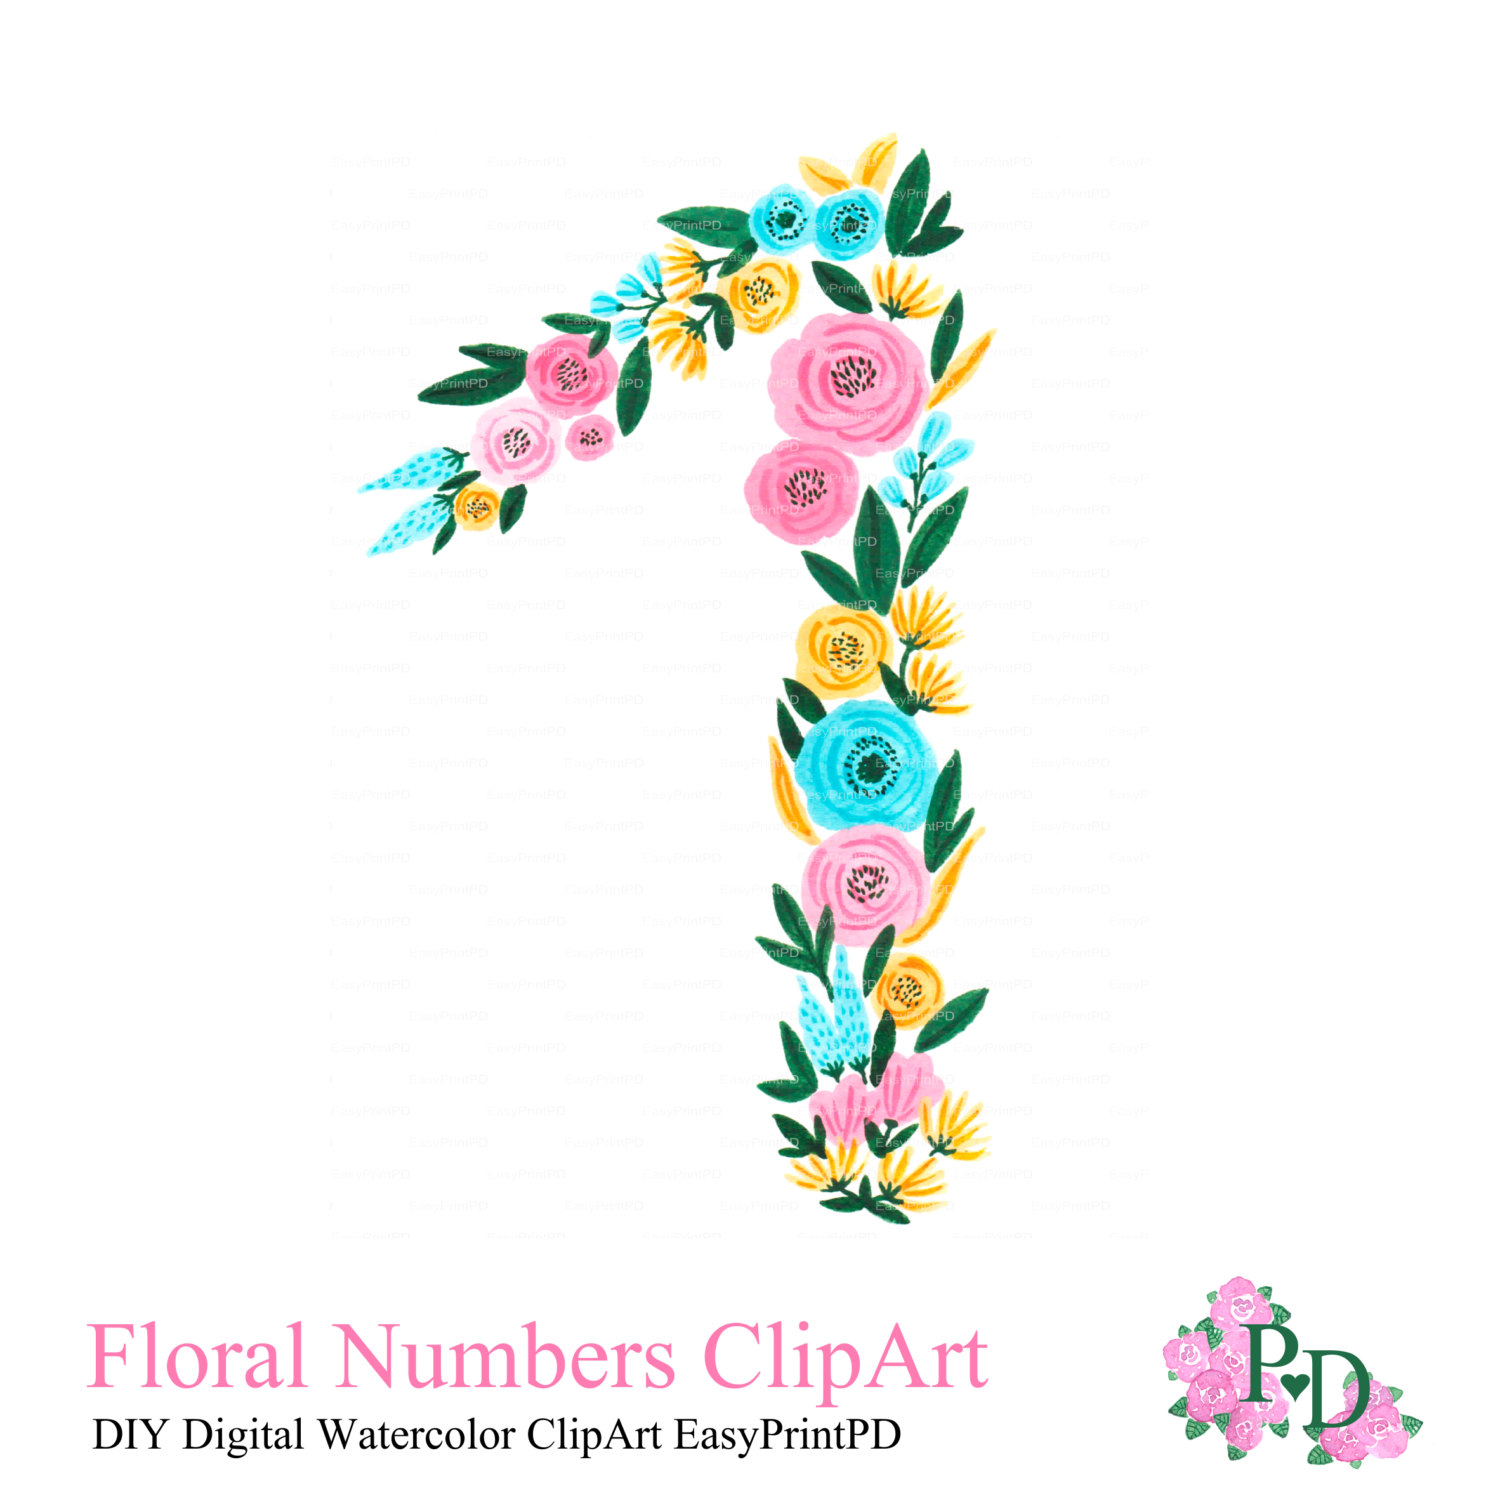 Number clipart number one Like one item? clipart this